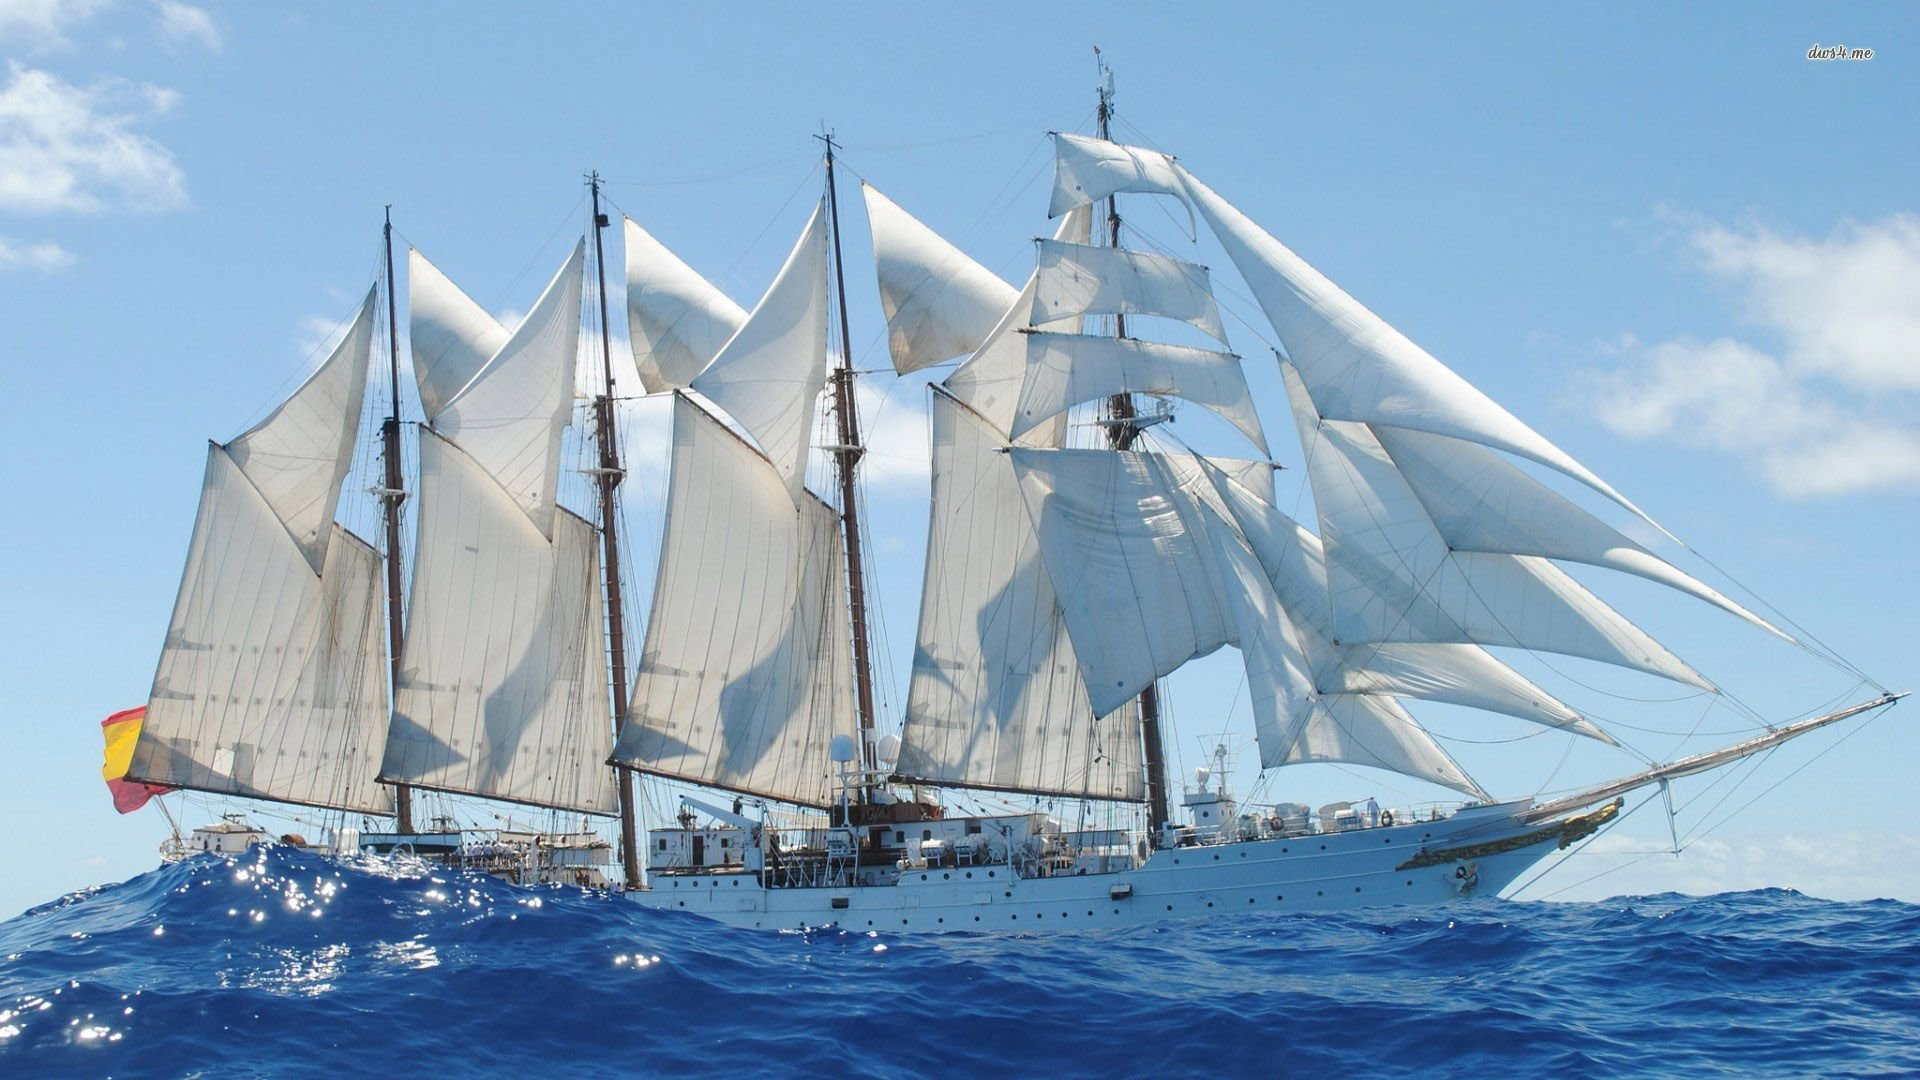 Best Sailing Ship wallpaper ID:483755 for High Resolution full hd 1080p PC